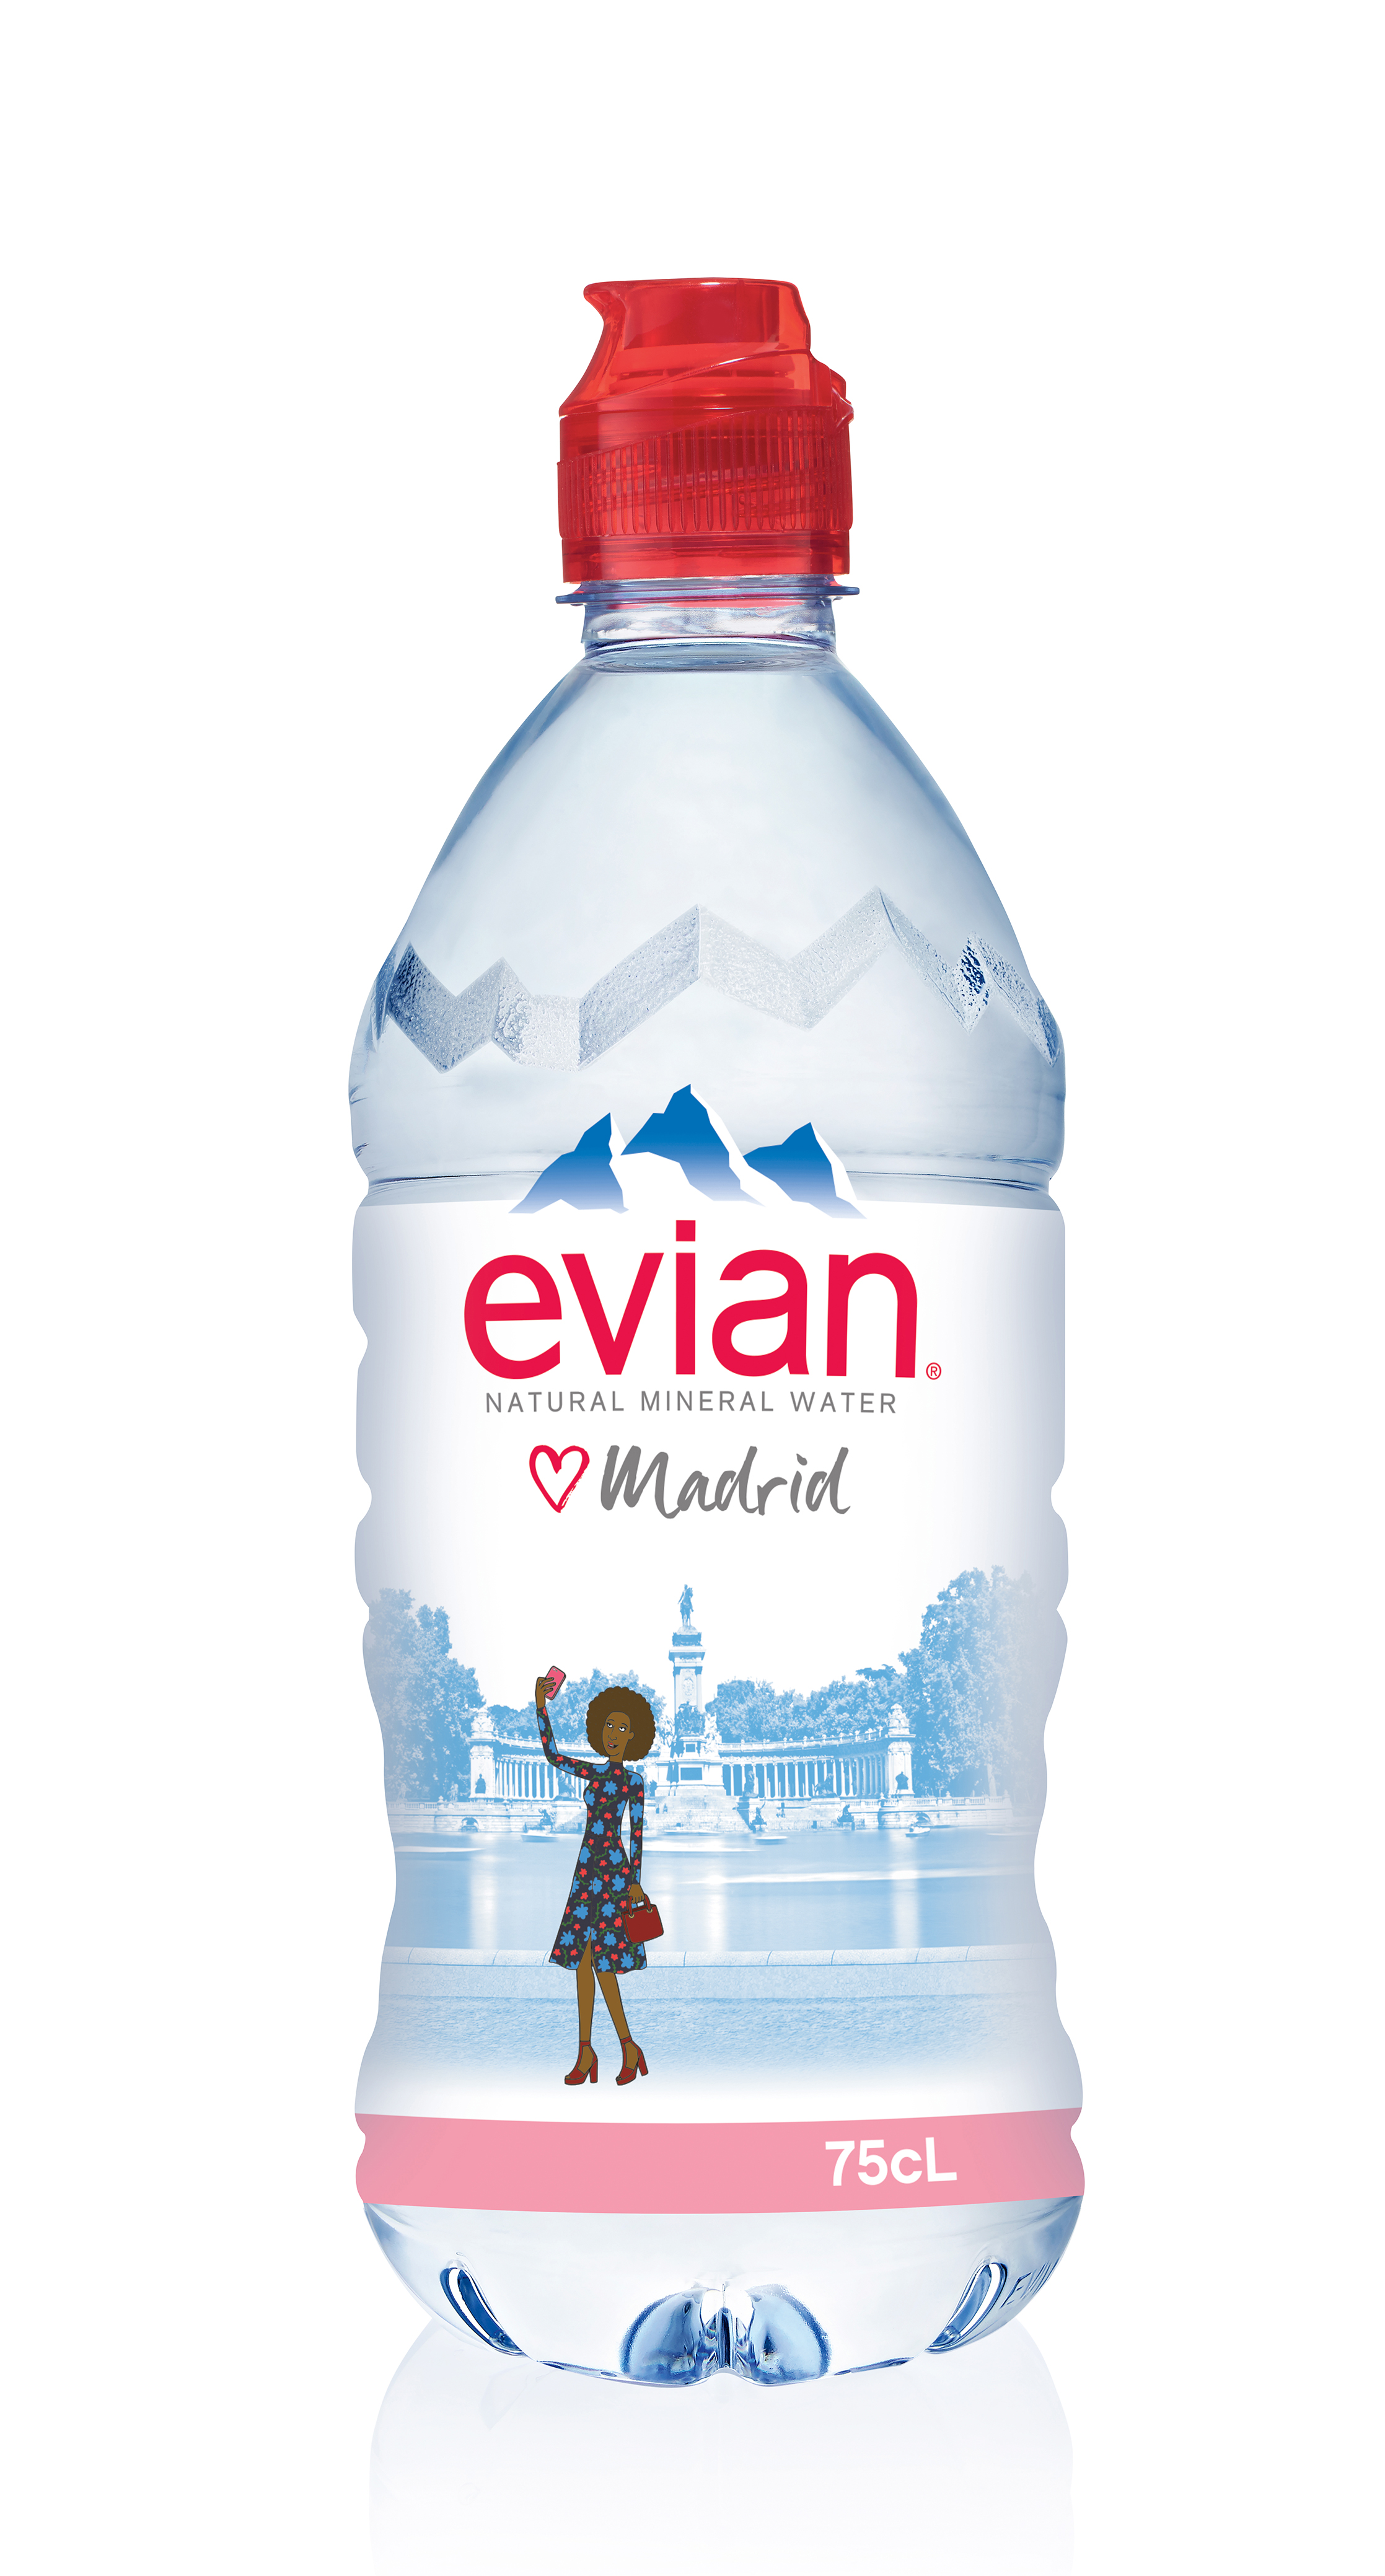 Evian_Cities_Bouteille_MAC_Spain75CL_RetiroPark_VERSO-HD.jpg